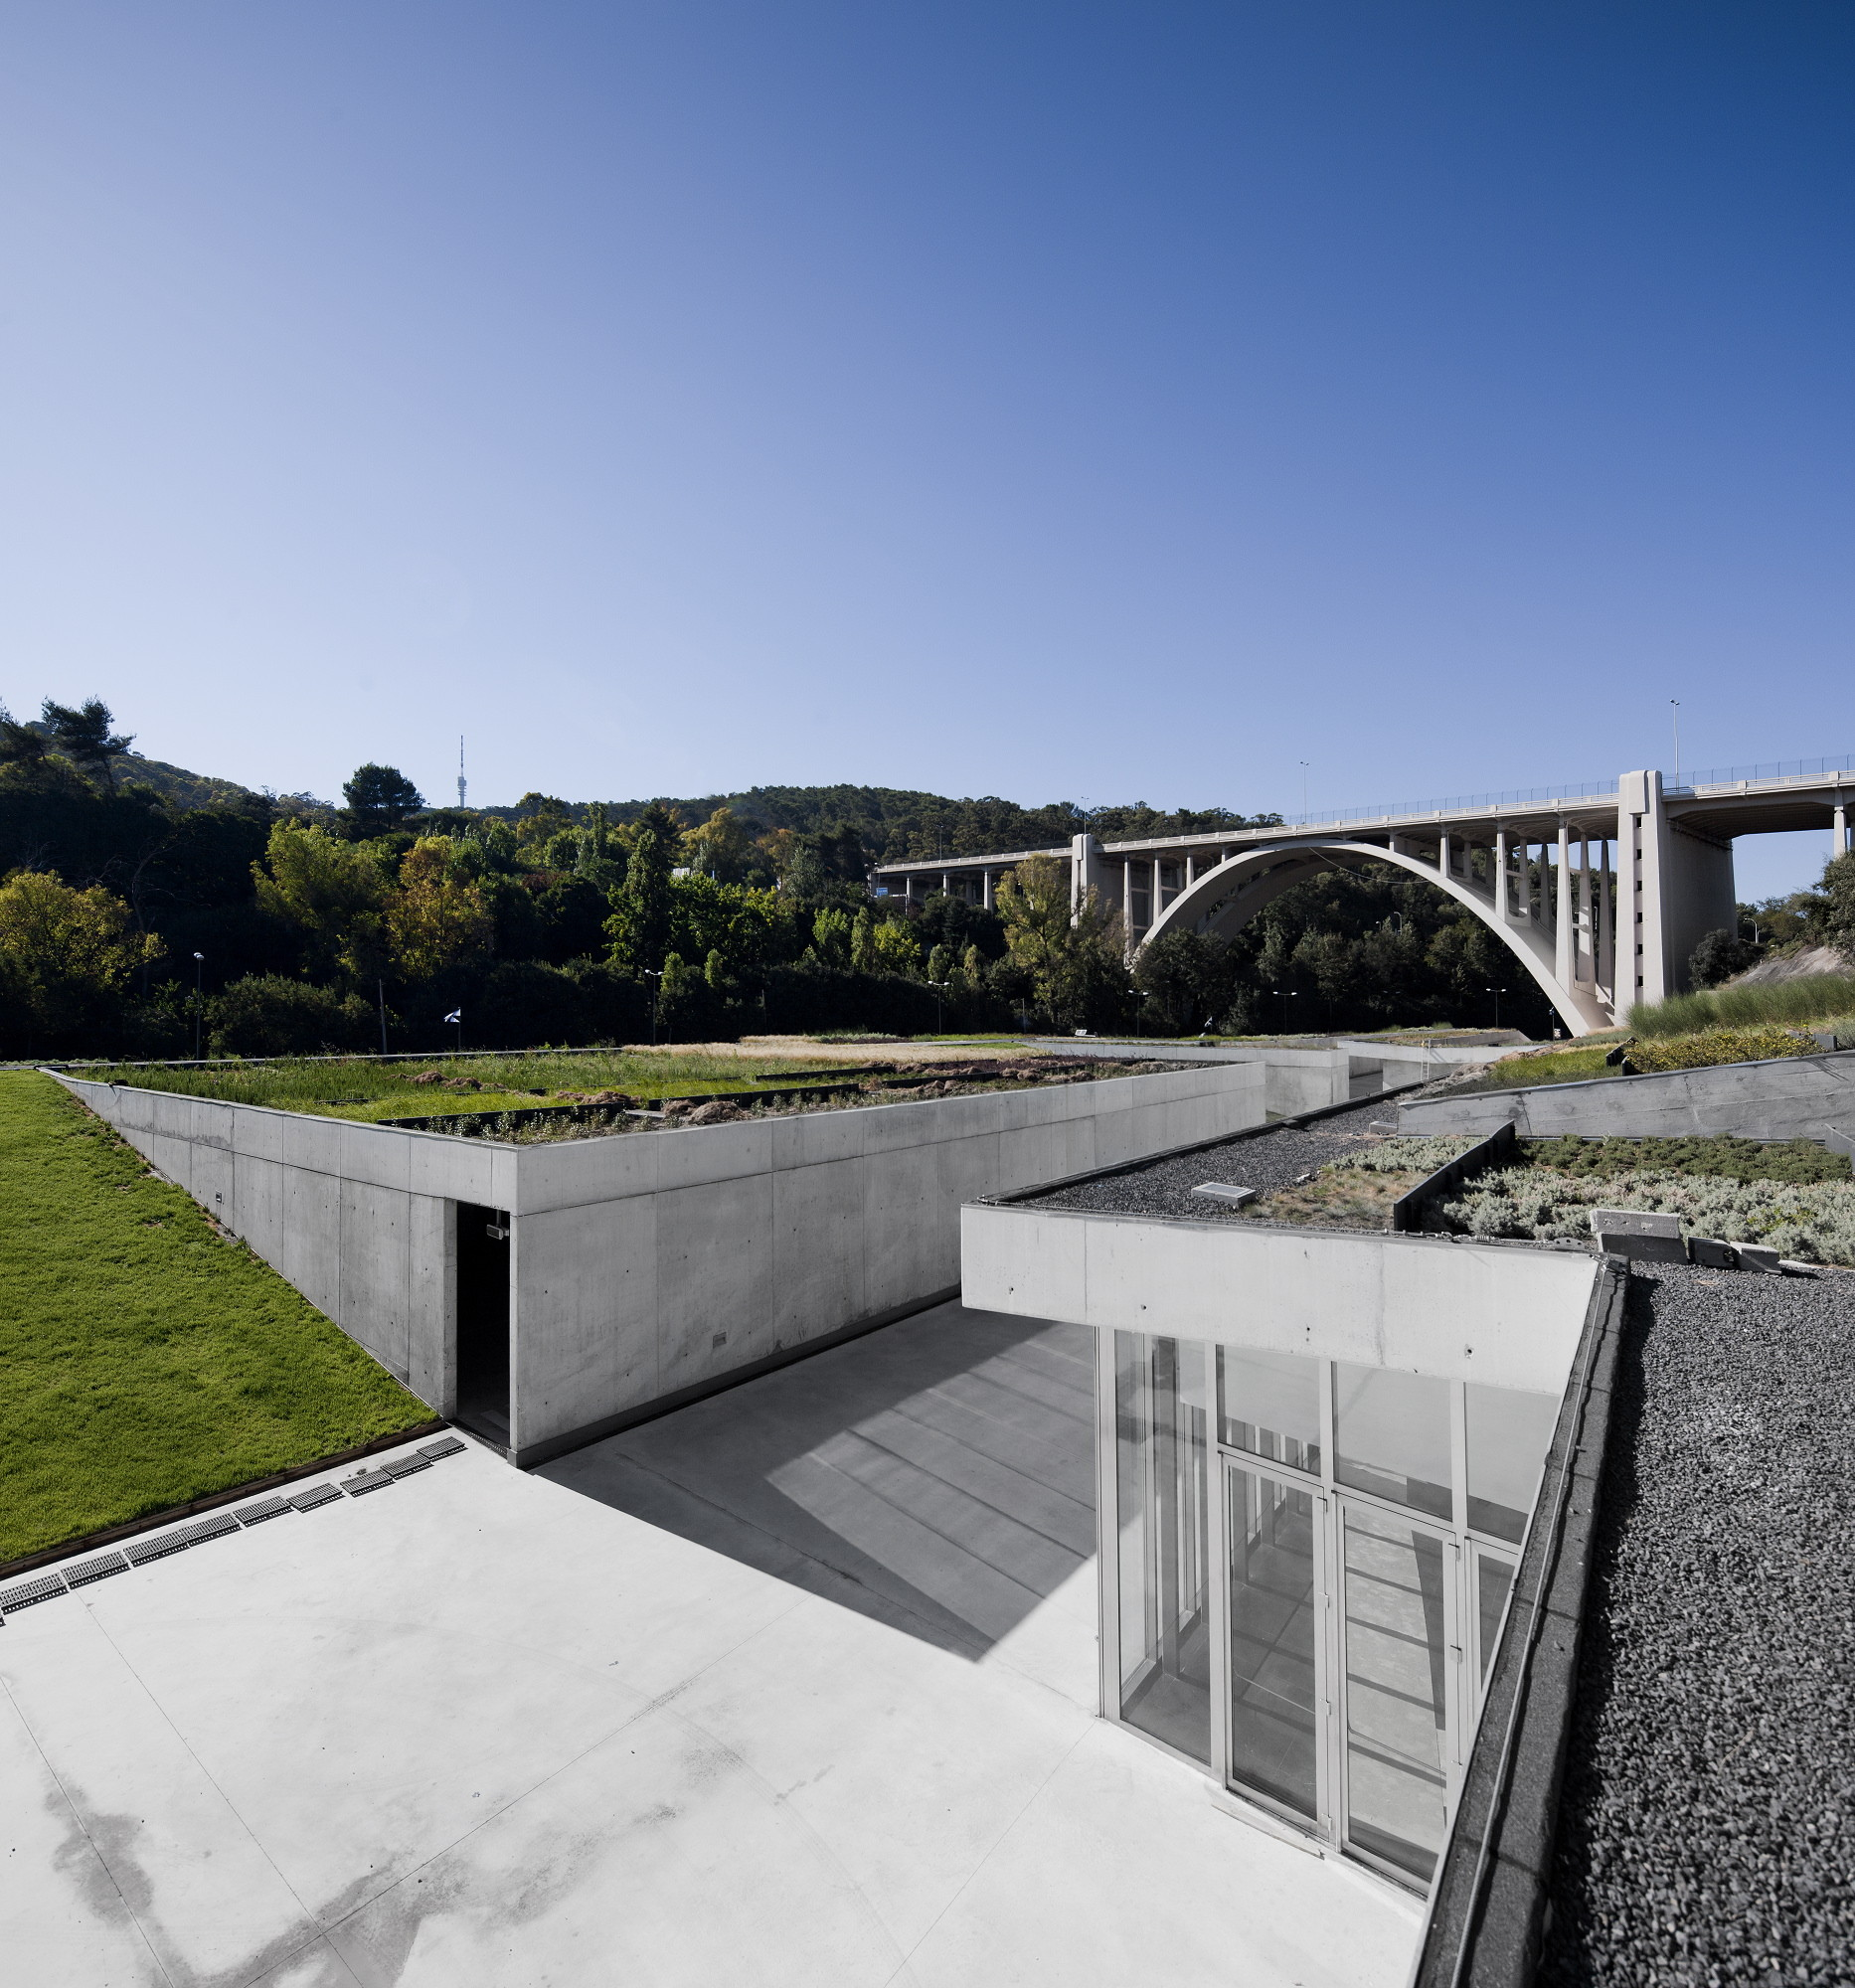 Manuel aires mateus office archdaily - Arquitectura minimalista ...